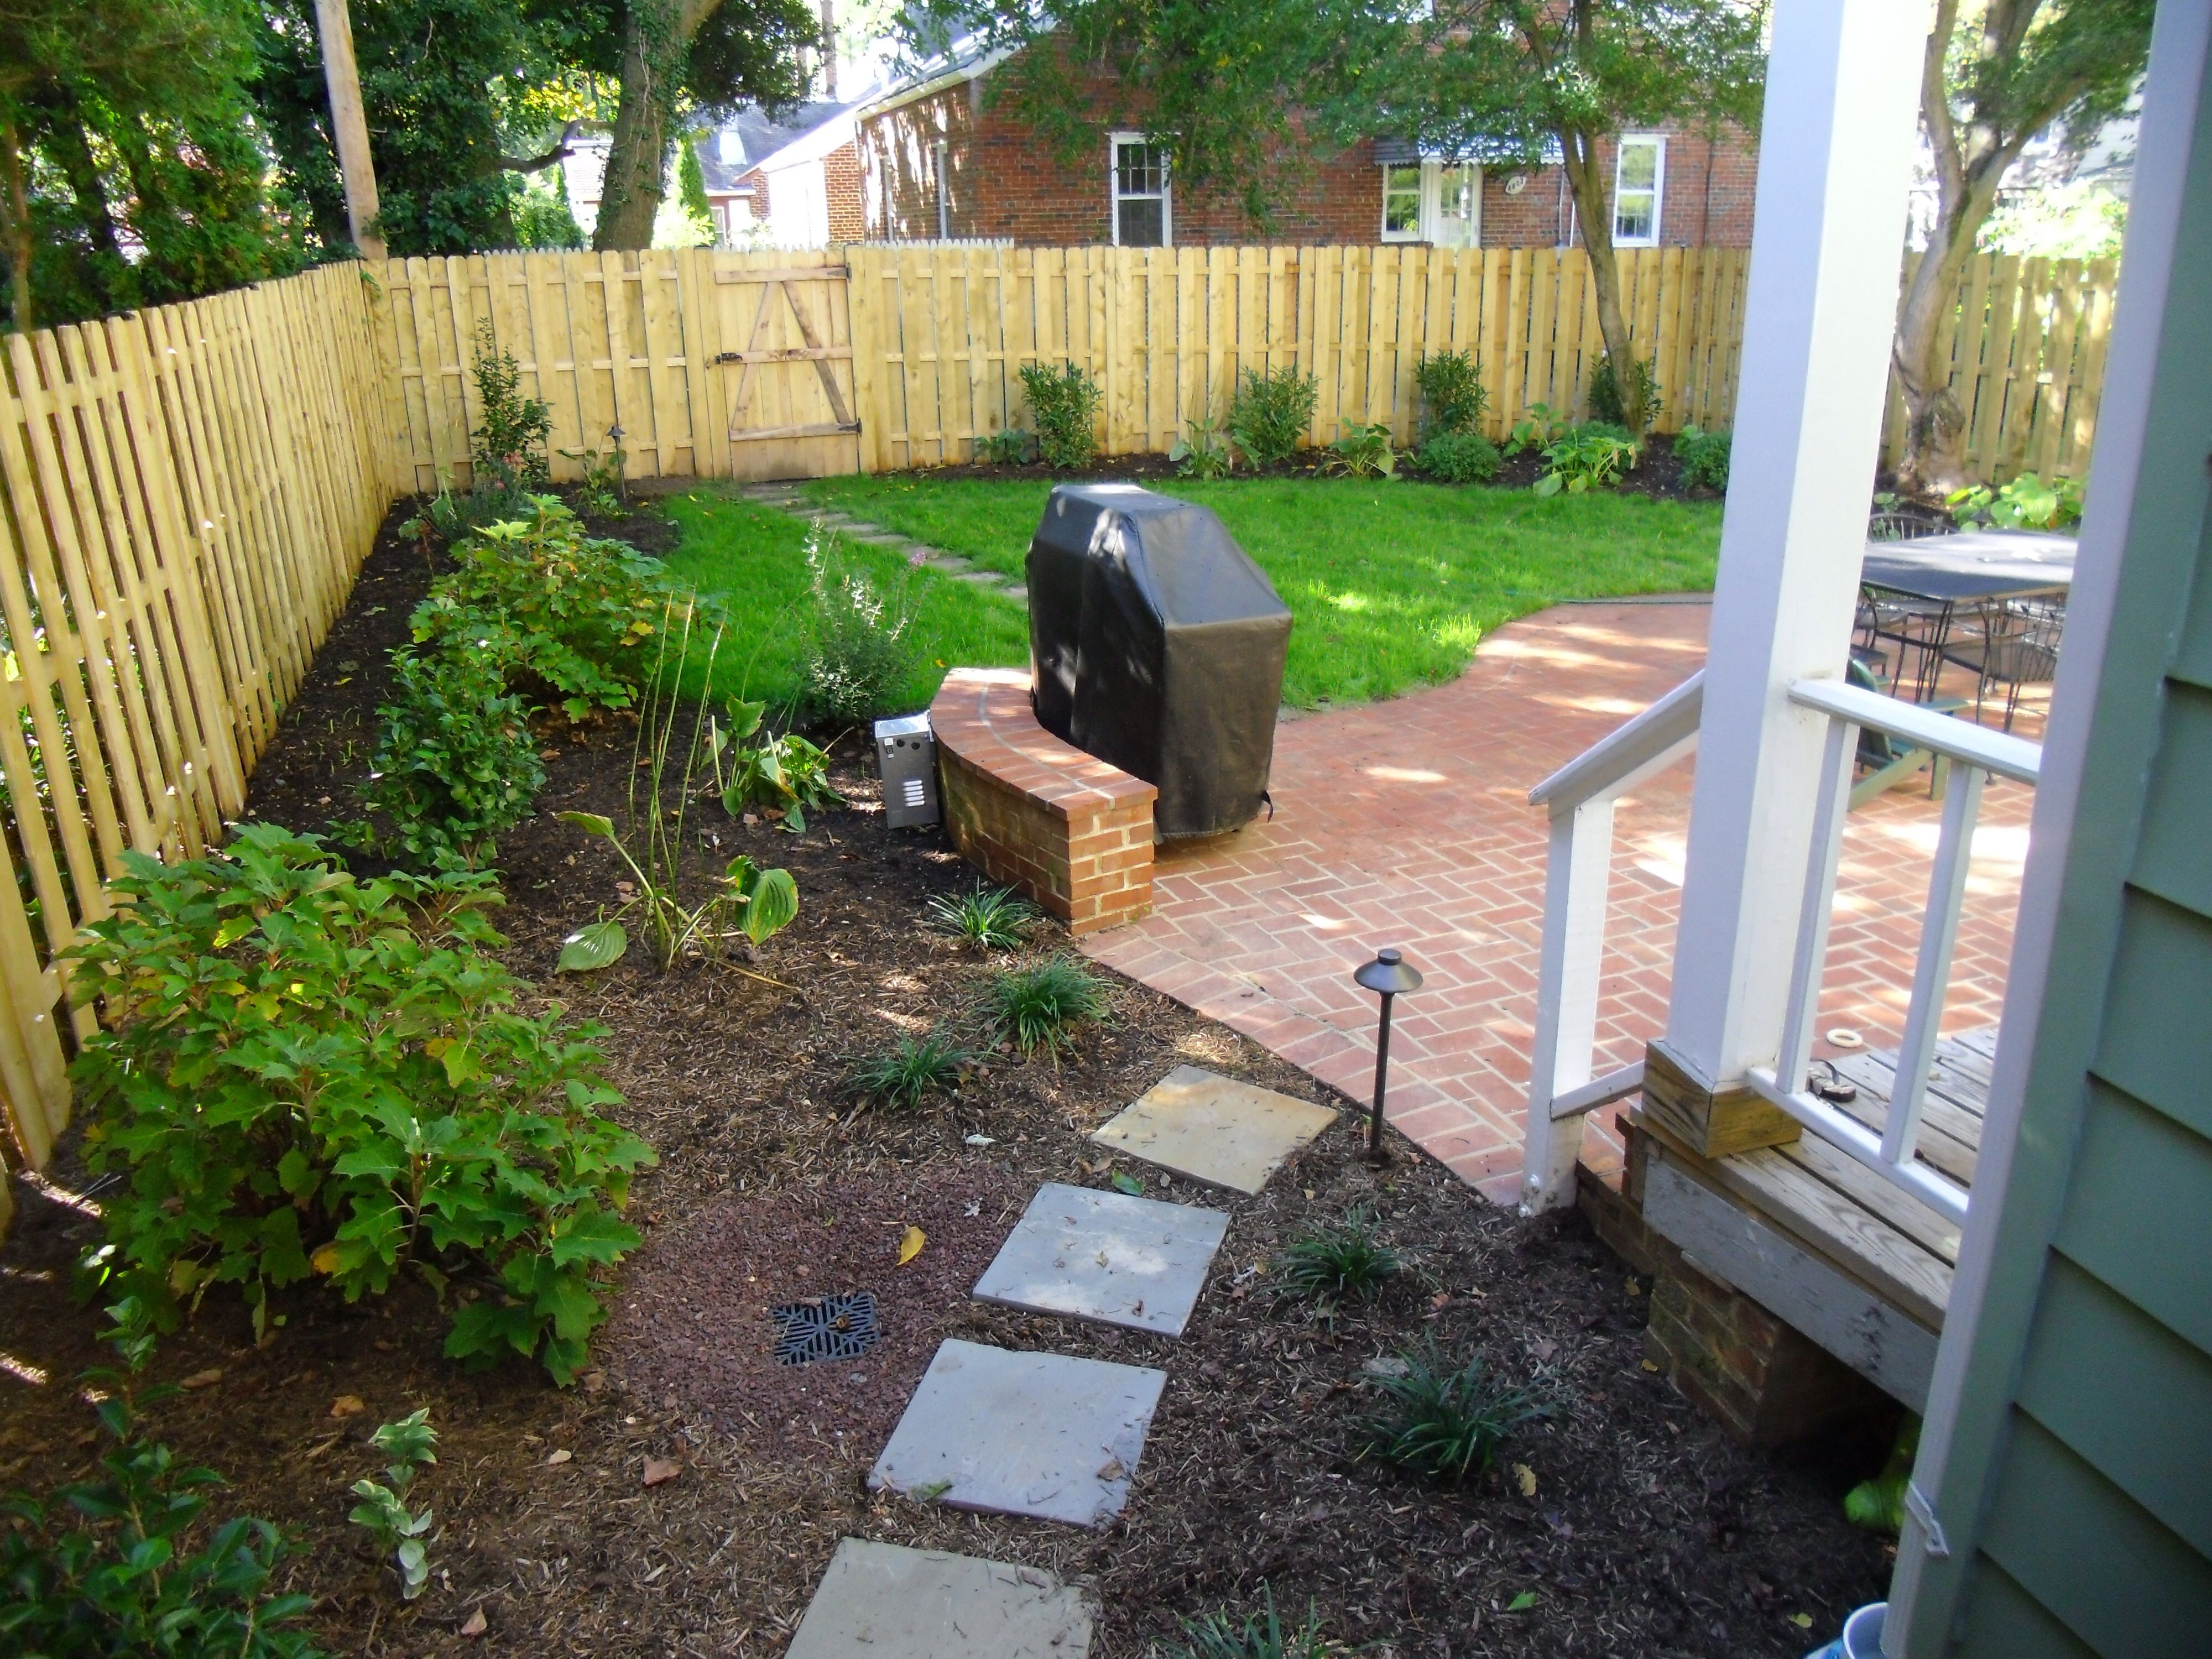 Privacy fence | Desert landscaping, Patio, Landscaping near me on Backyard Landscaping Companies Near Me id=97461